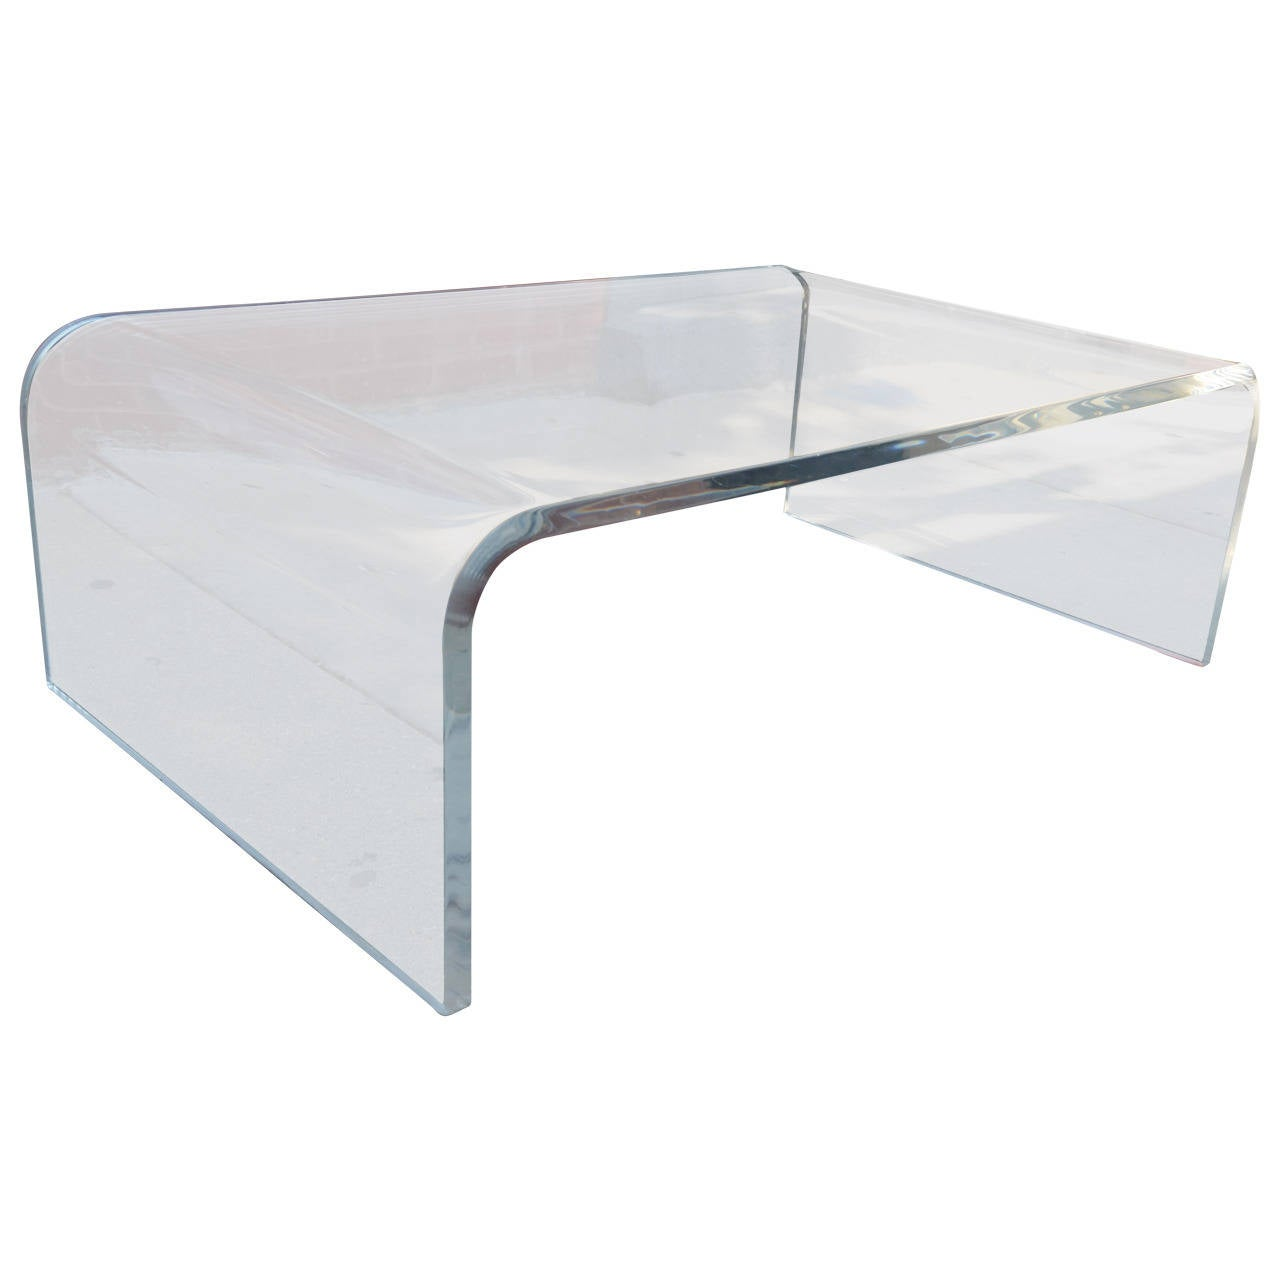 Perspex Coffee Tables Home Design